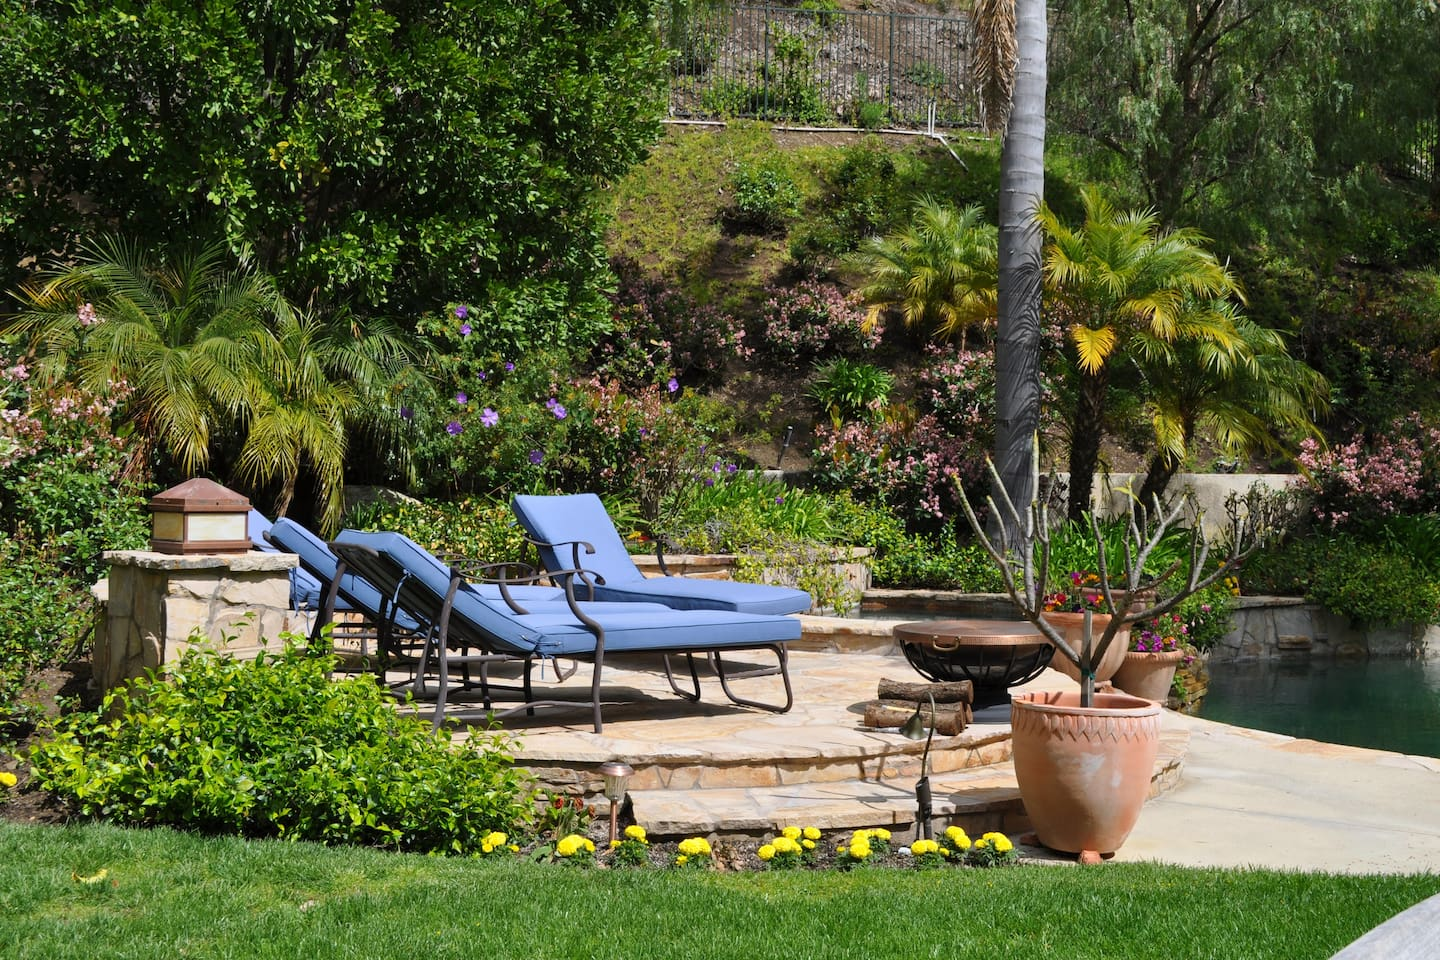 Resort like setting, private jacuzzi, pool -Great place to enjoy the California sunshine